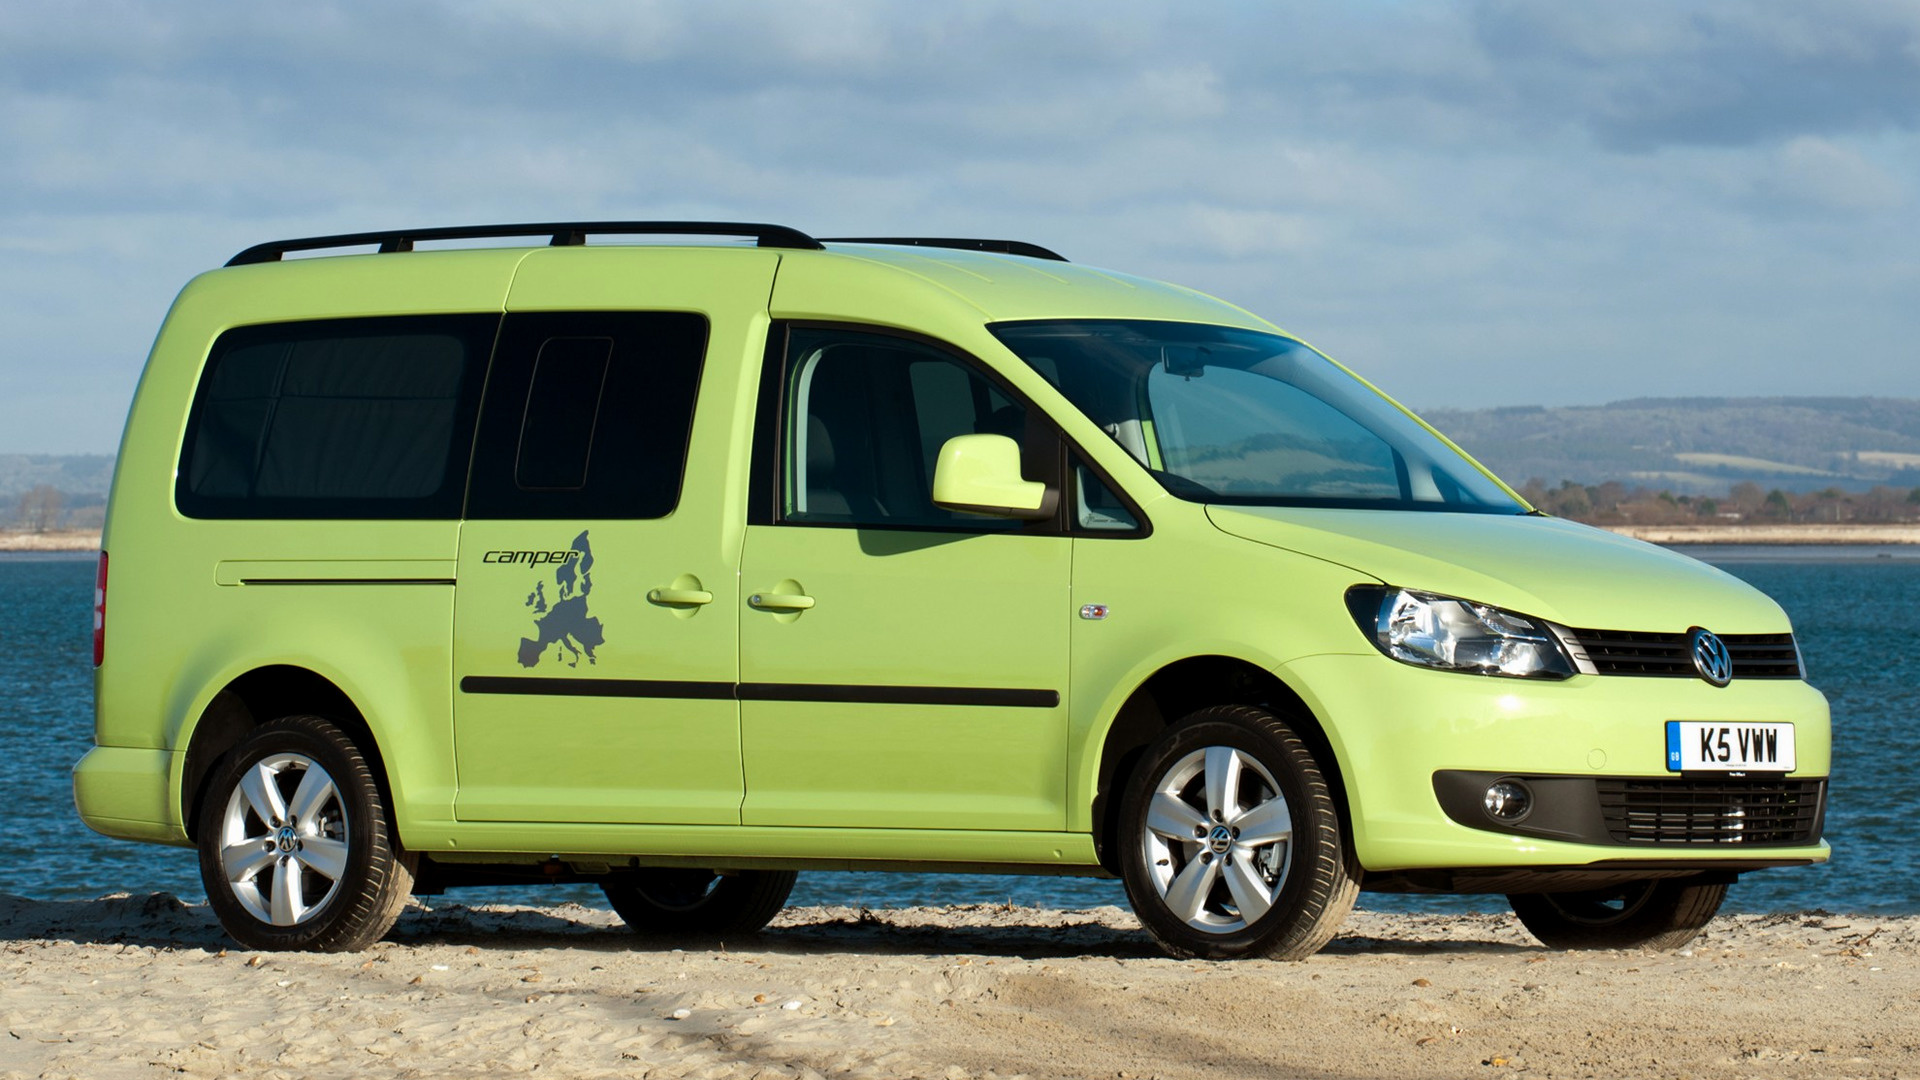 volkswagen caddy maxi camper 2013 uk wallpapers and hd. Black Bedroom Furniture Sets. Home Design Ideas